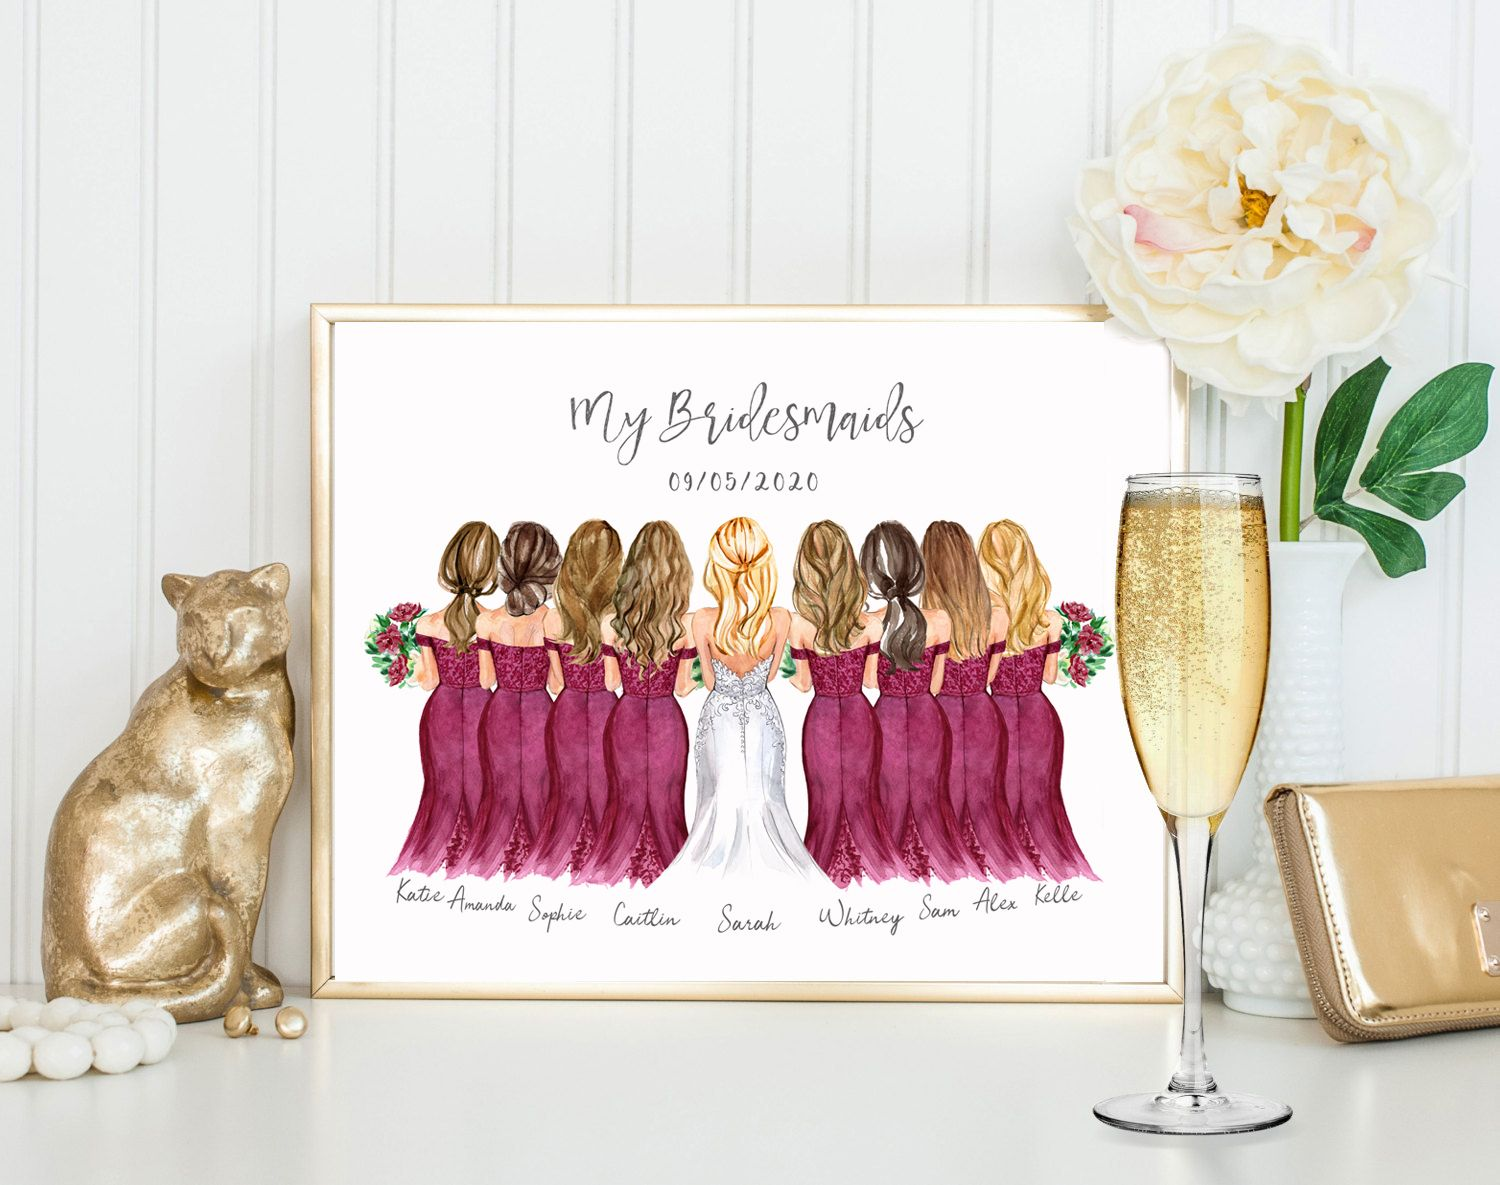 Customized Bridesmaids Gift Gifts For Bridesmaids Bridesmaid Gift Ideas Bride Gifts Gifts For Bride Wedding Favour Bridesmaids Print In 2020 Customized Bridesmaid Gifts Bride Gifts Bridesmaid Gifts